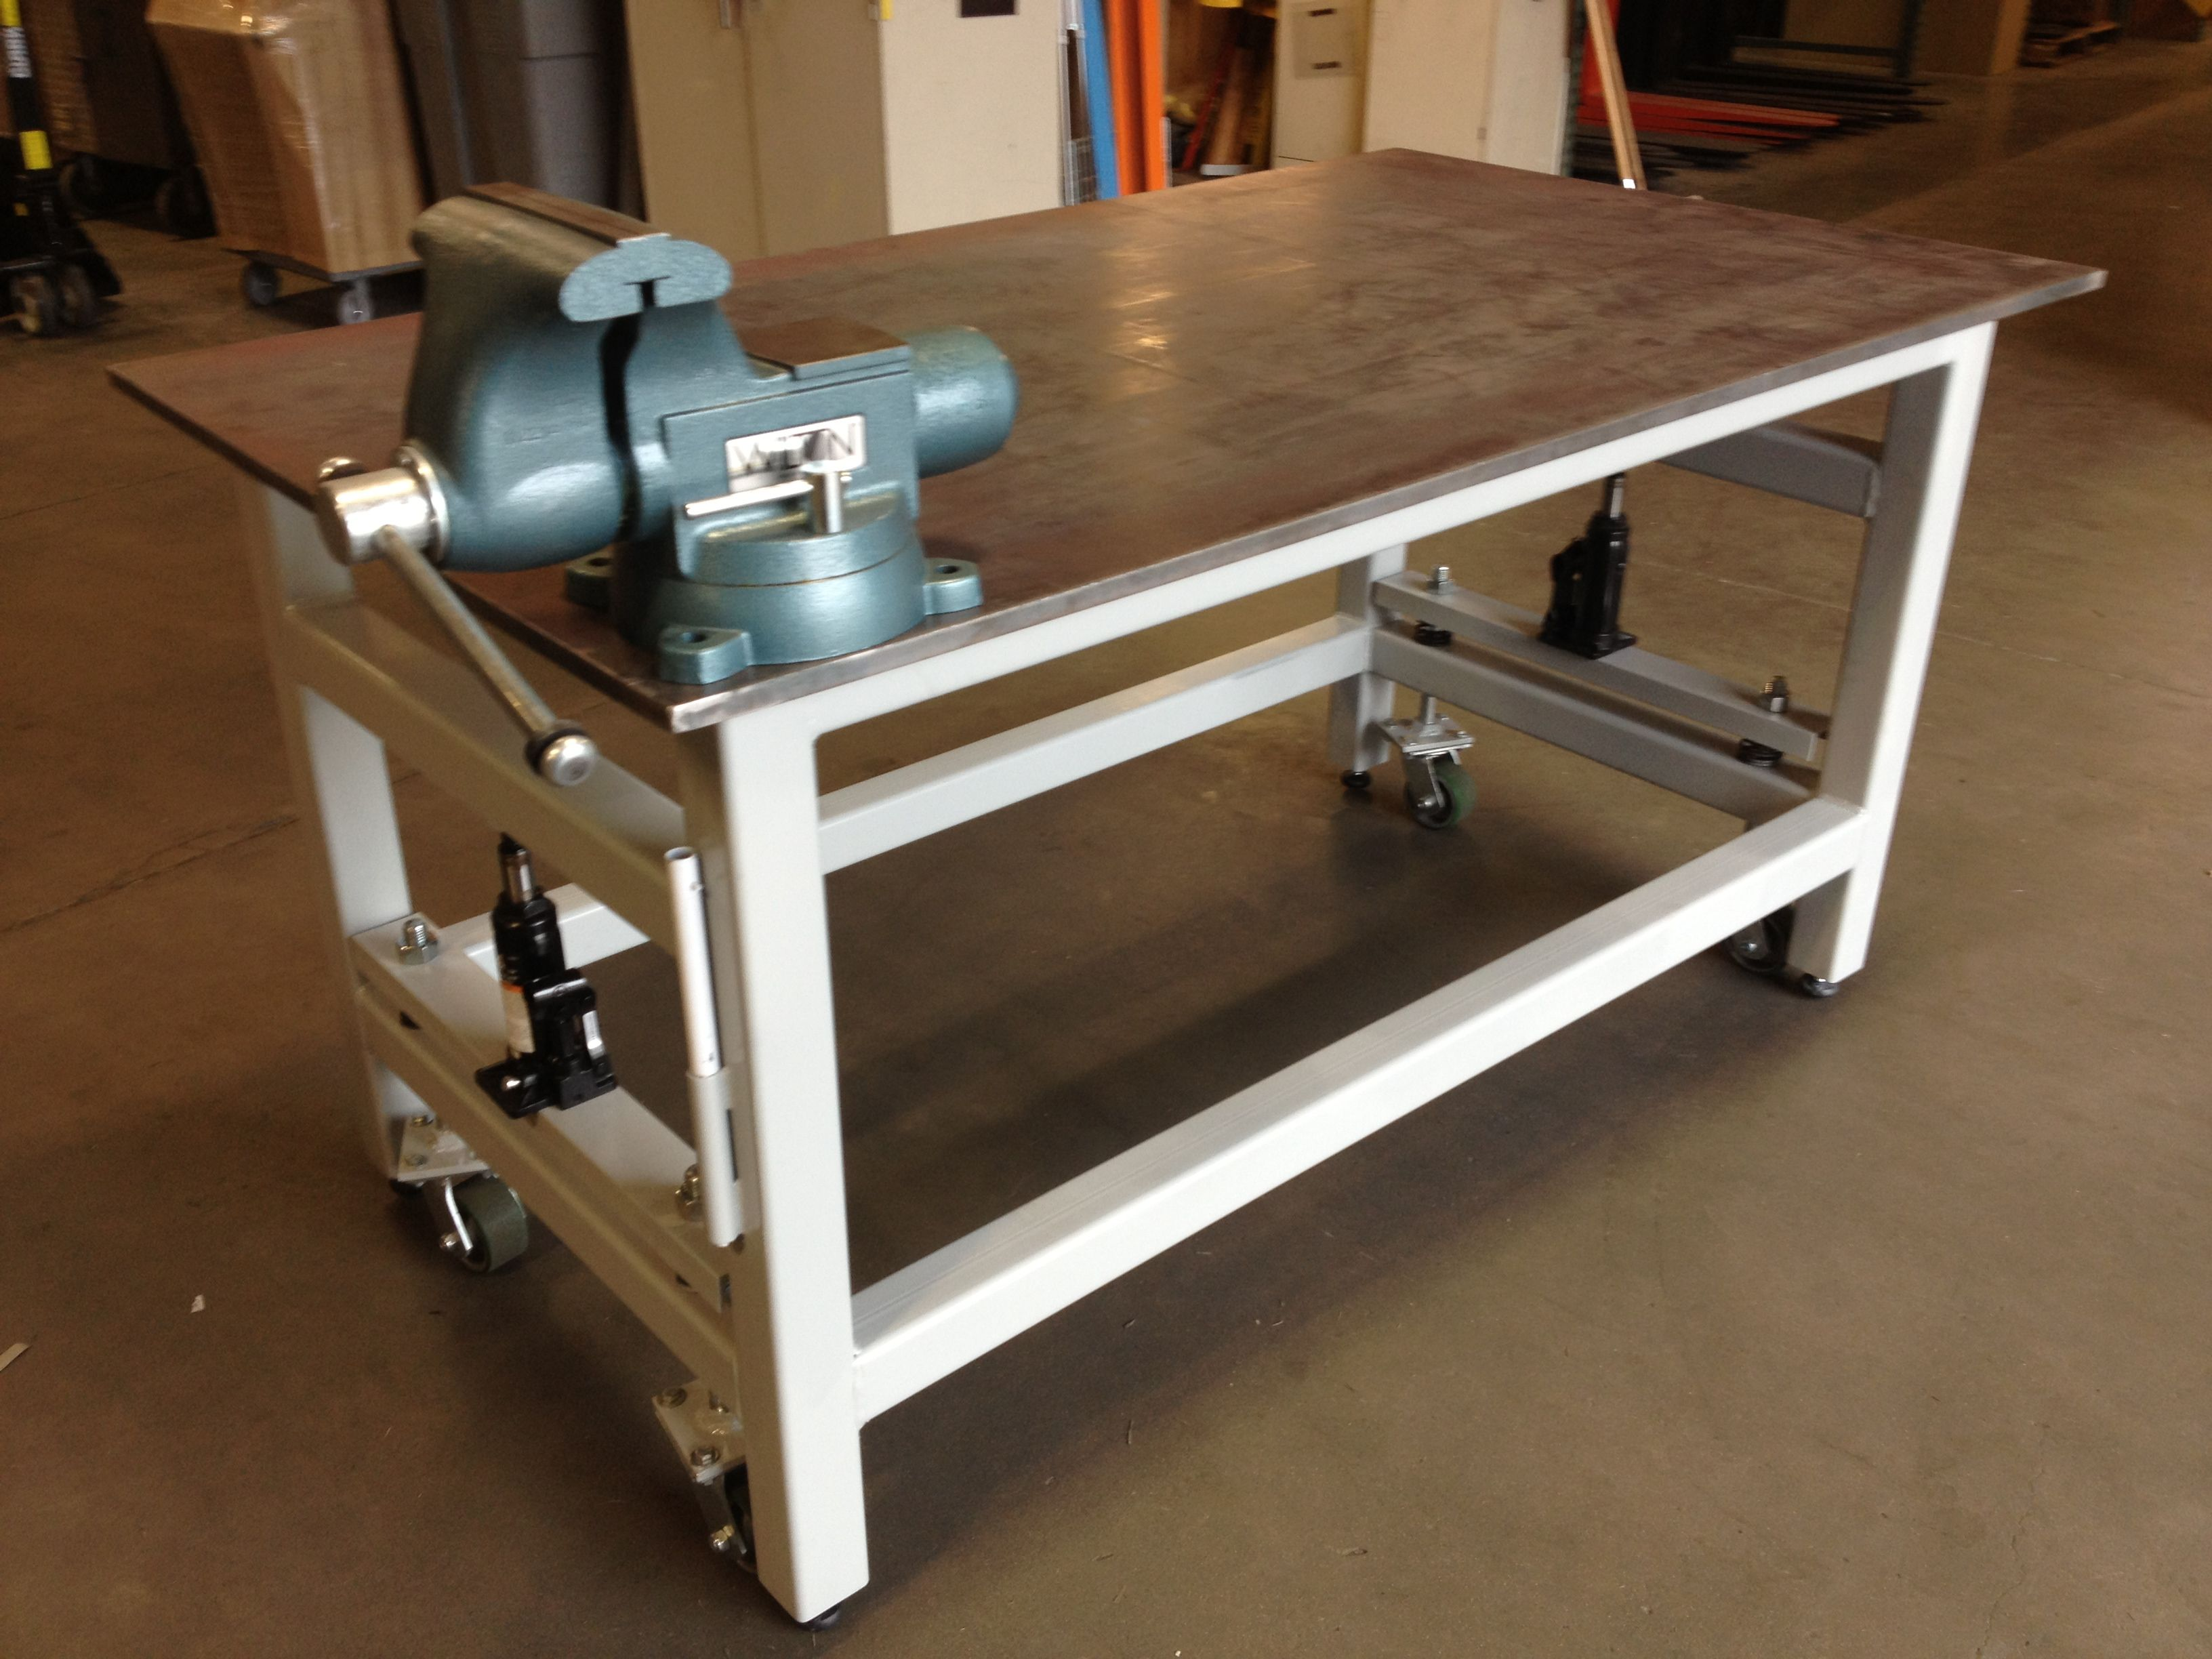 Small Wood Workbench | Metal Workbench | Steel Workbenches With Drawers